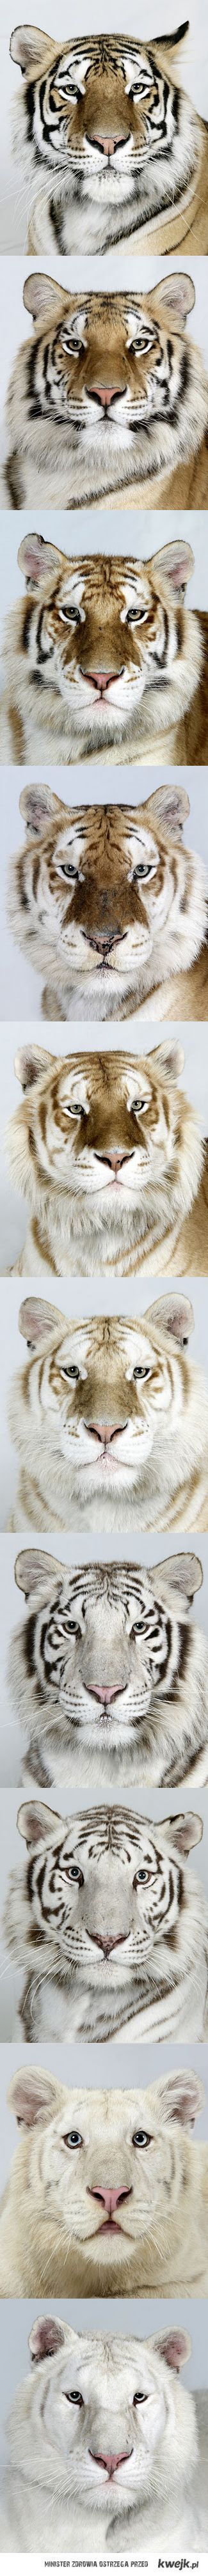 Tigers - I bet they think we all look the same.